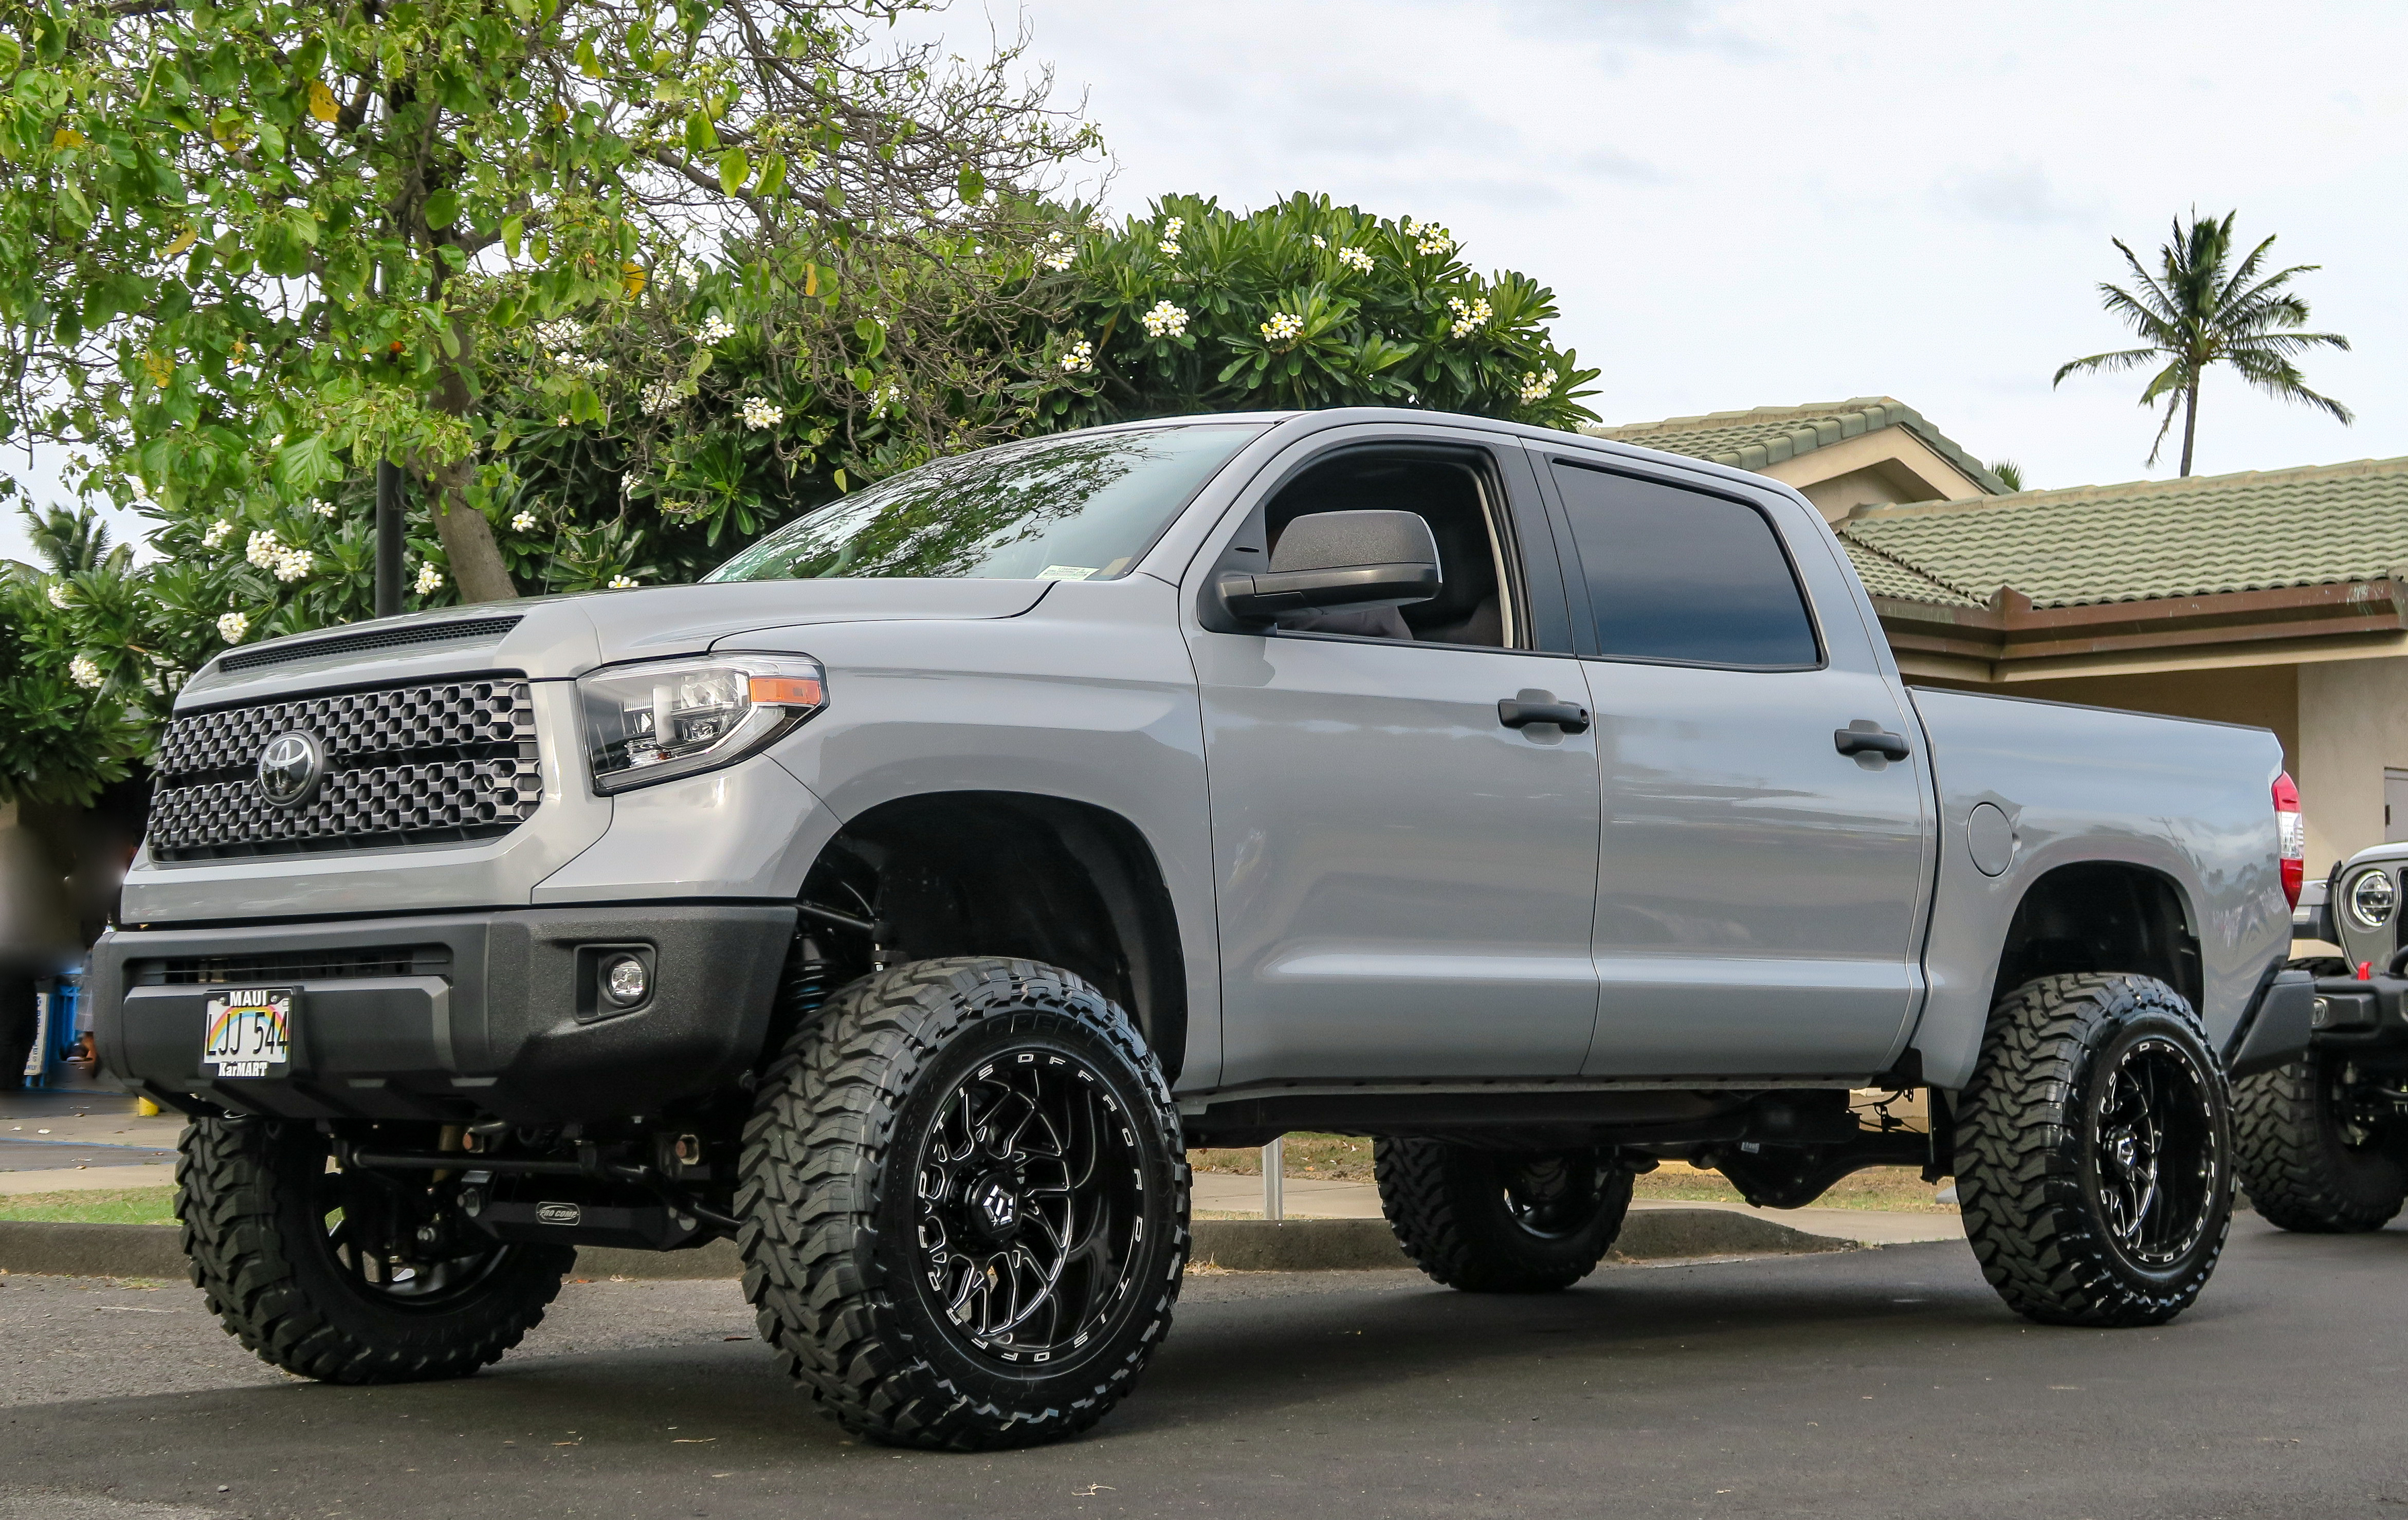 KarMART of Maui Tacoma and Tundra